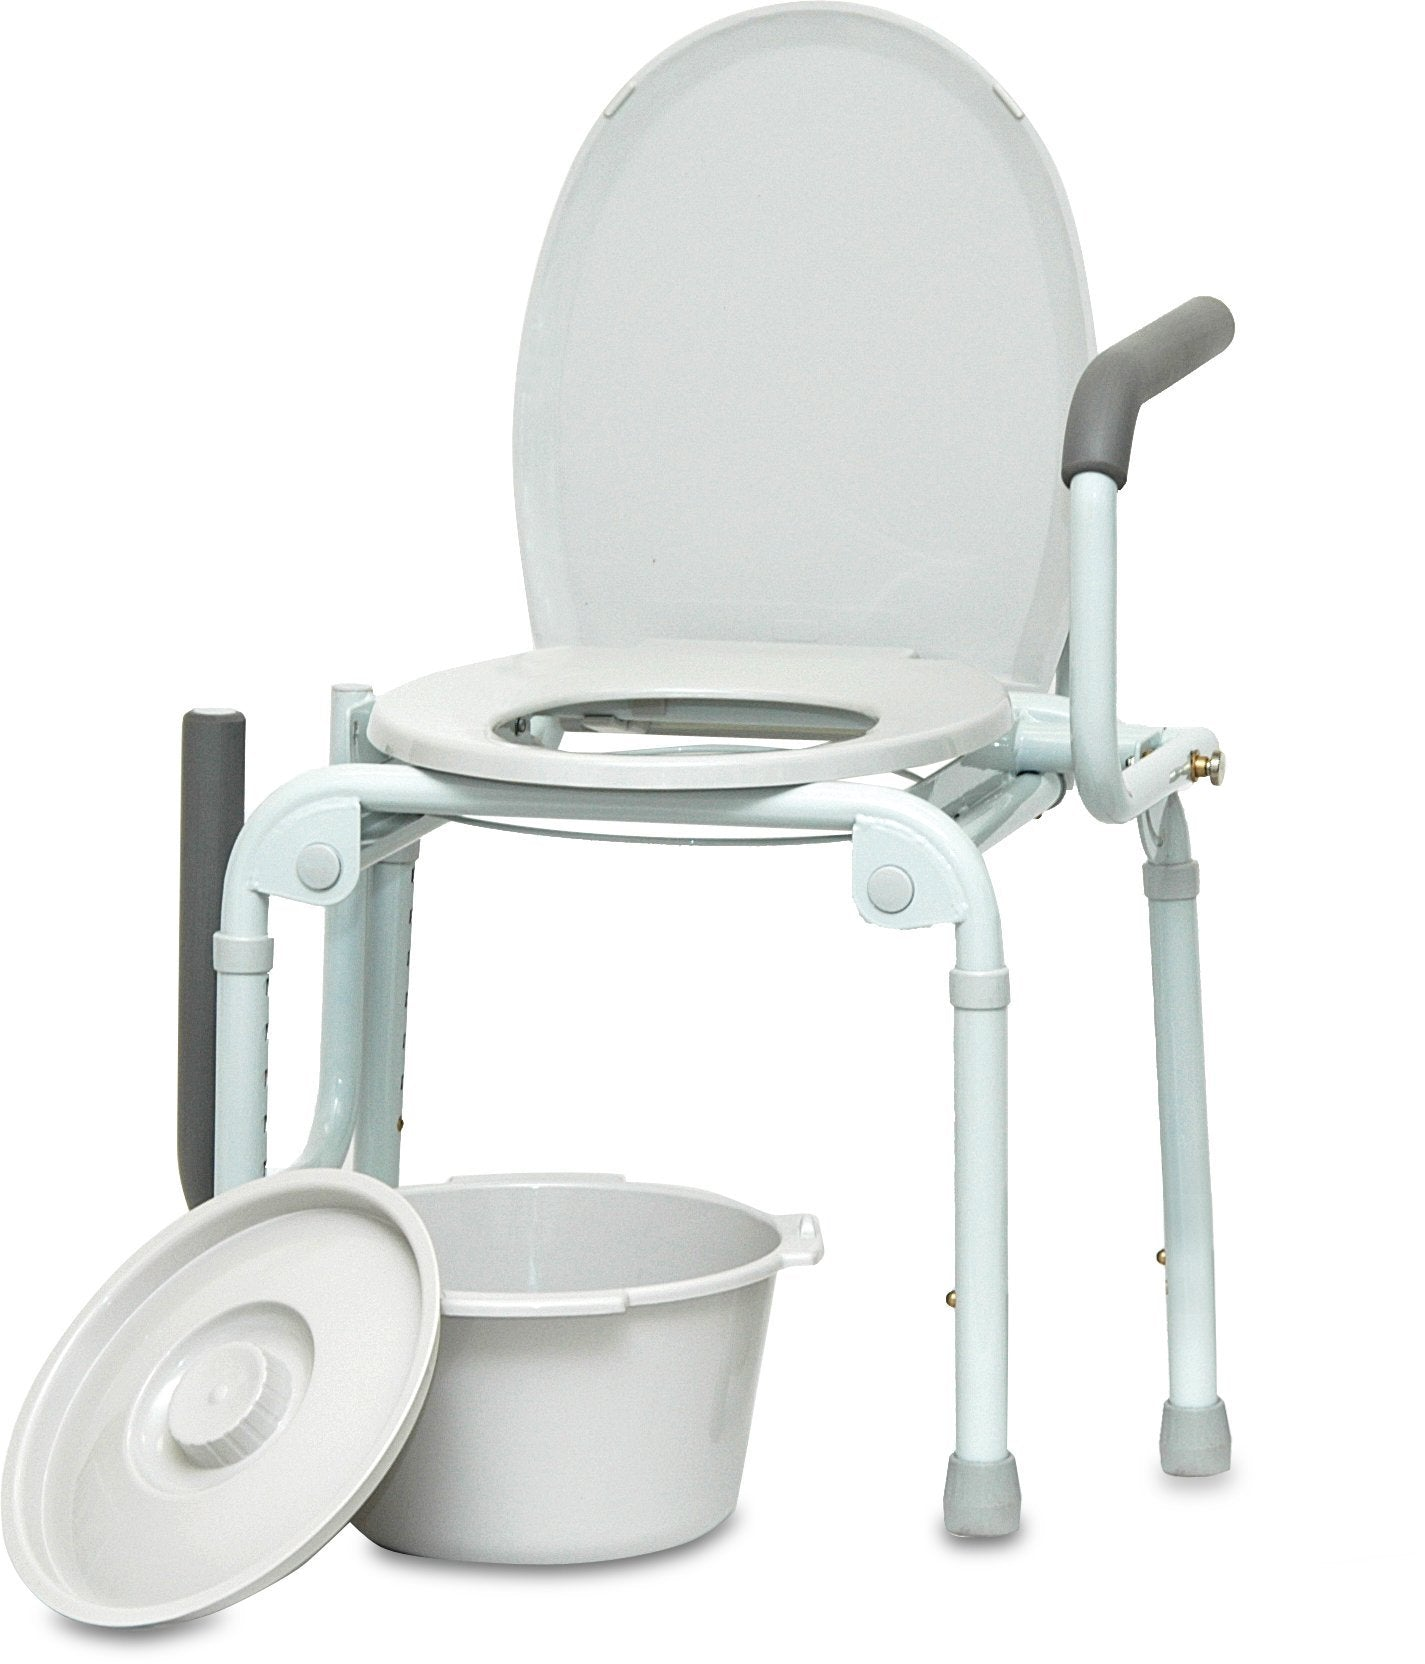 Drop Arm Commode, 300lb Weight Capacity - US MED REHAB